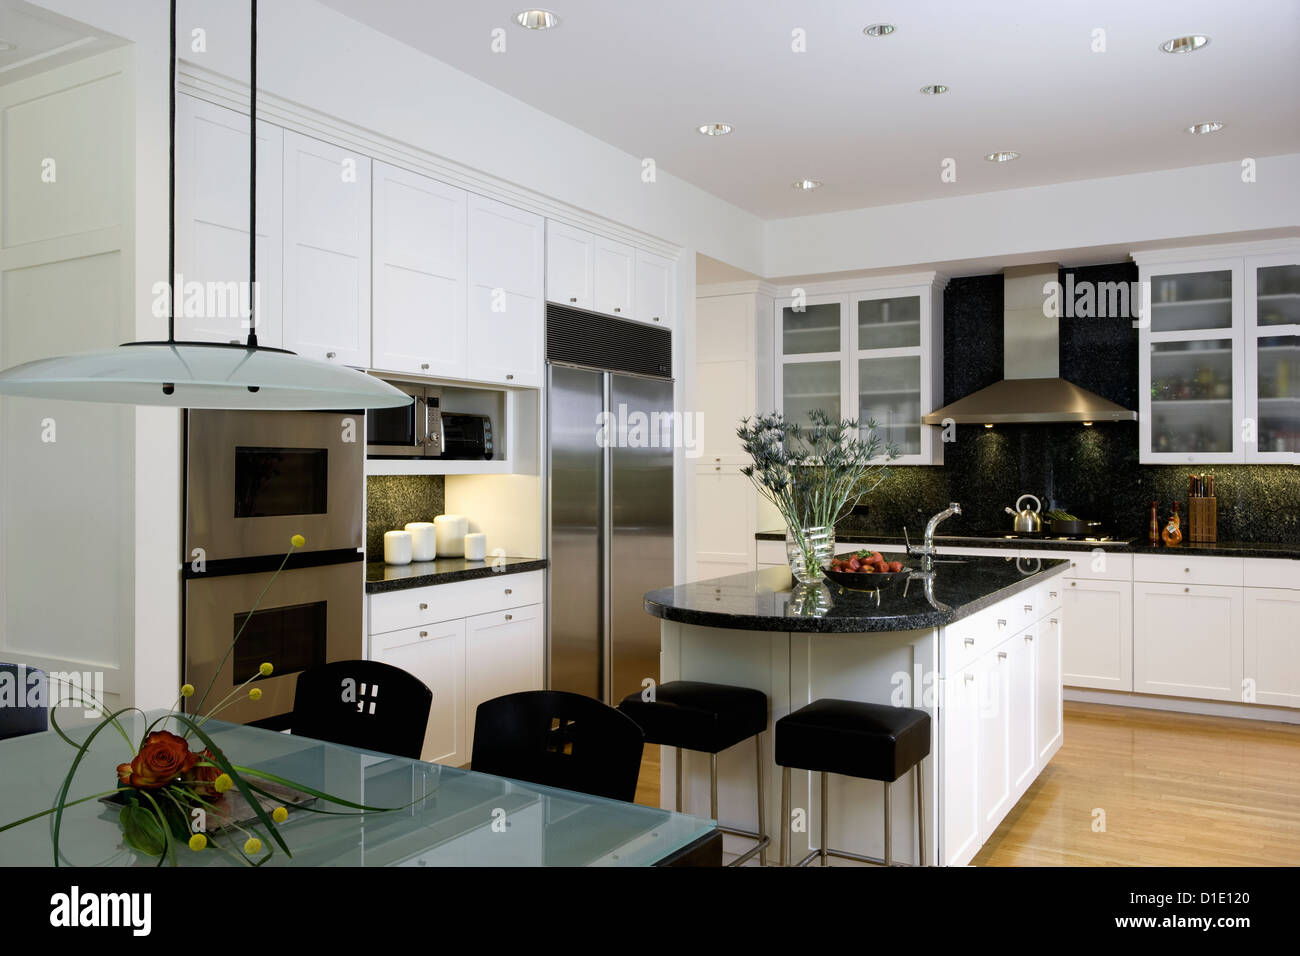 Kitchen Horizontal With Frosted Glass Top Table In Foreground Kitchen Stock Photo Alamy